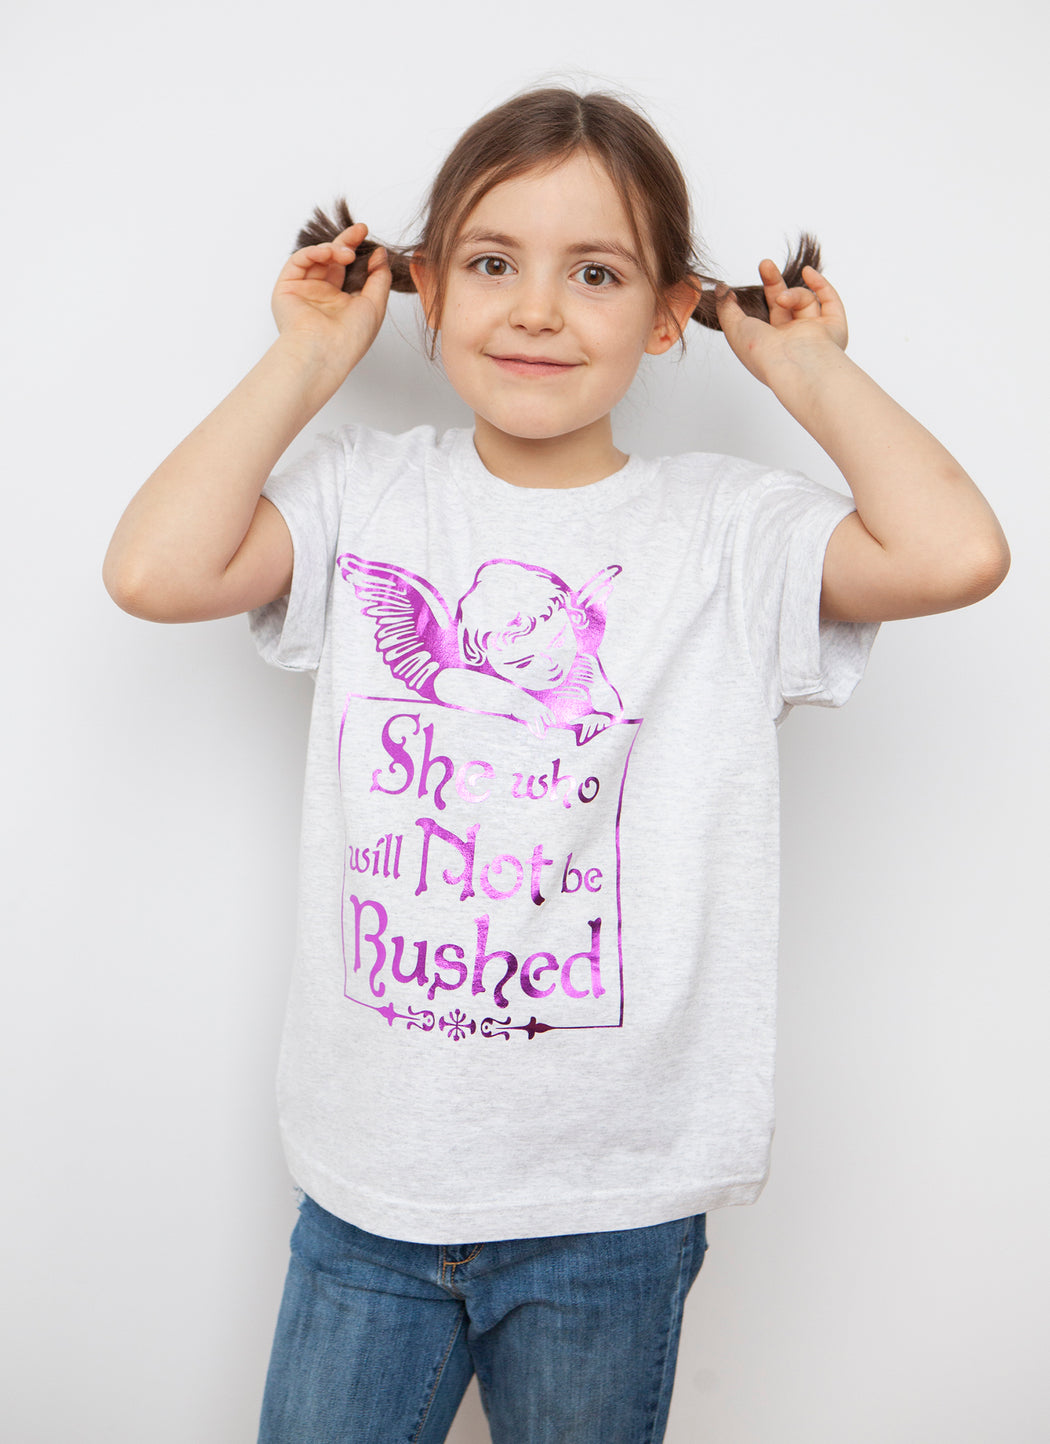 She Who Will Not Be Rushed - Kids Tee